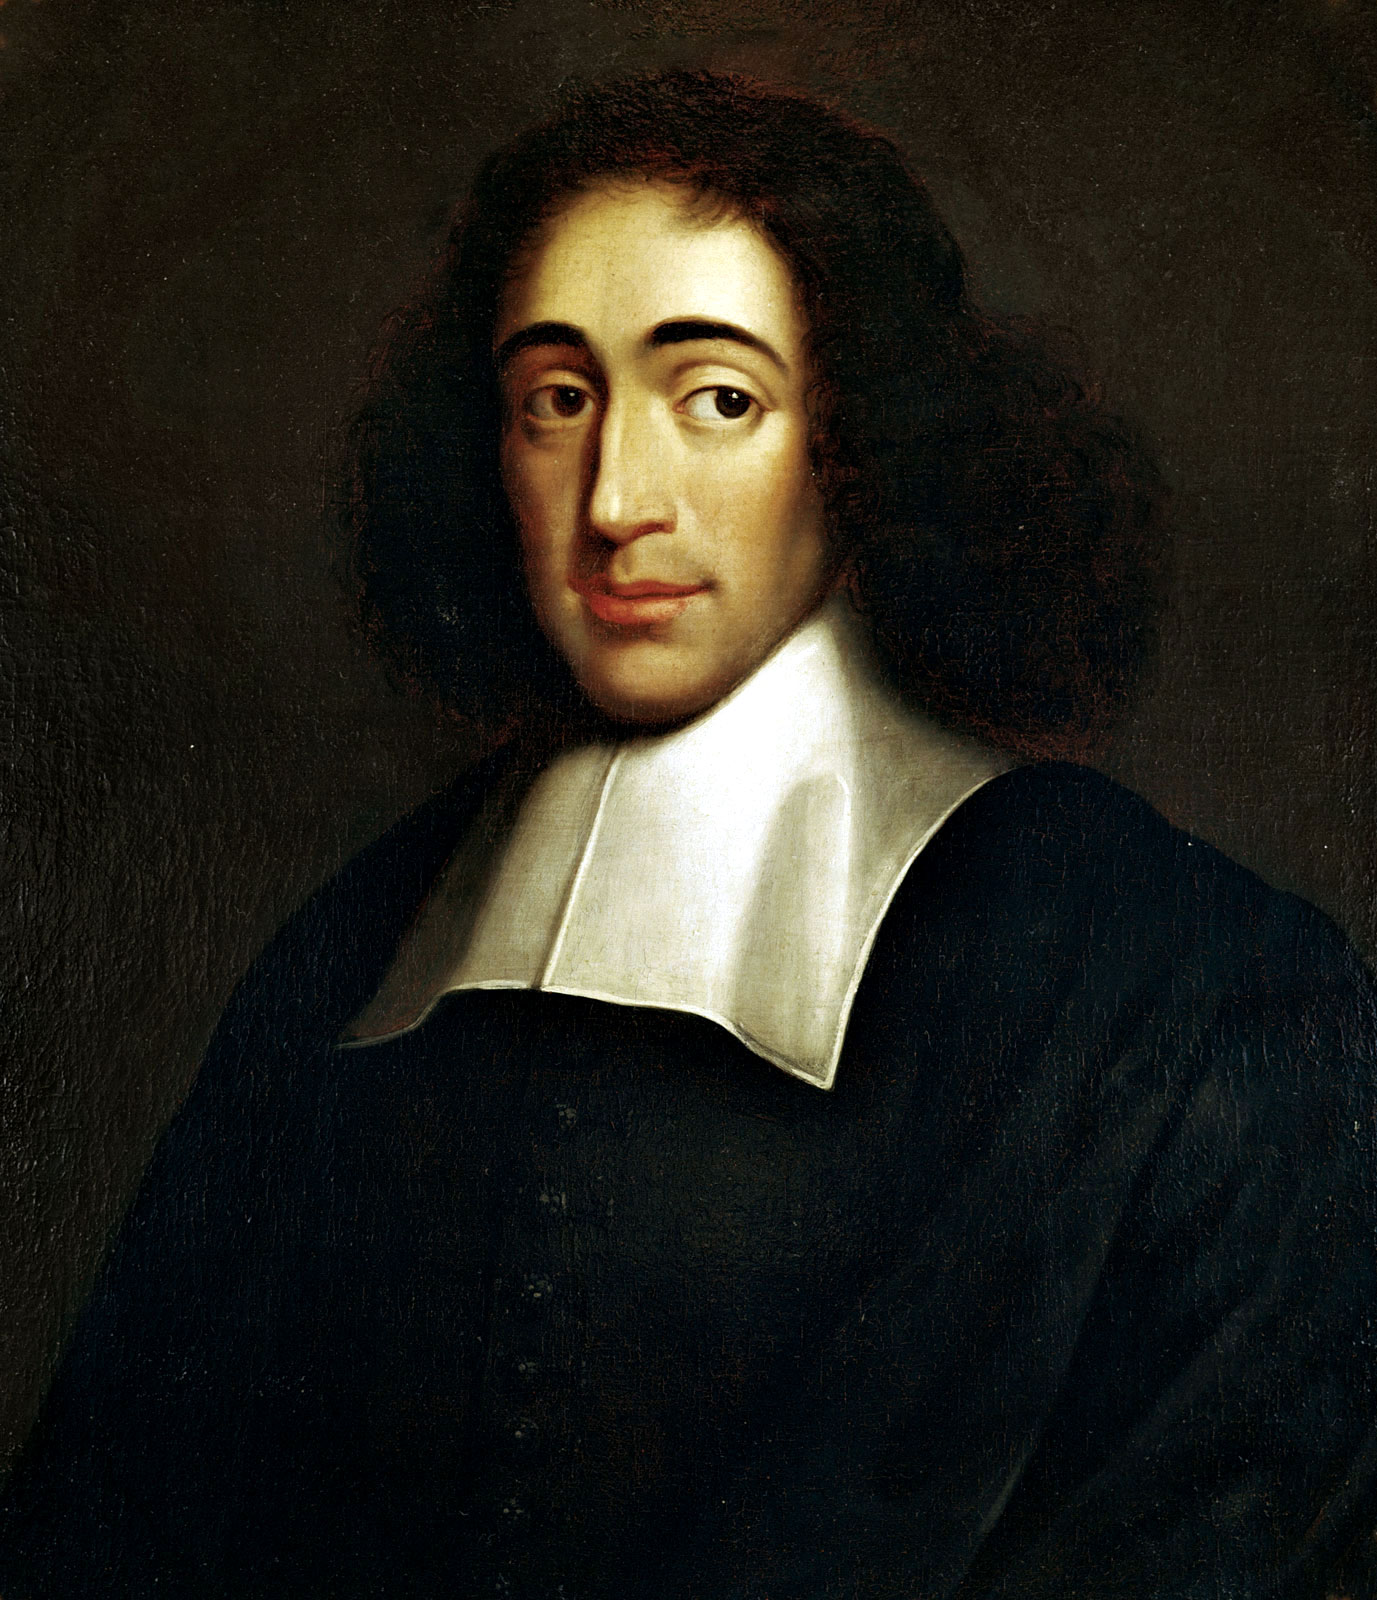 The God of Spinoza.